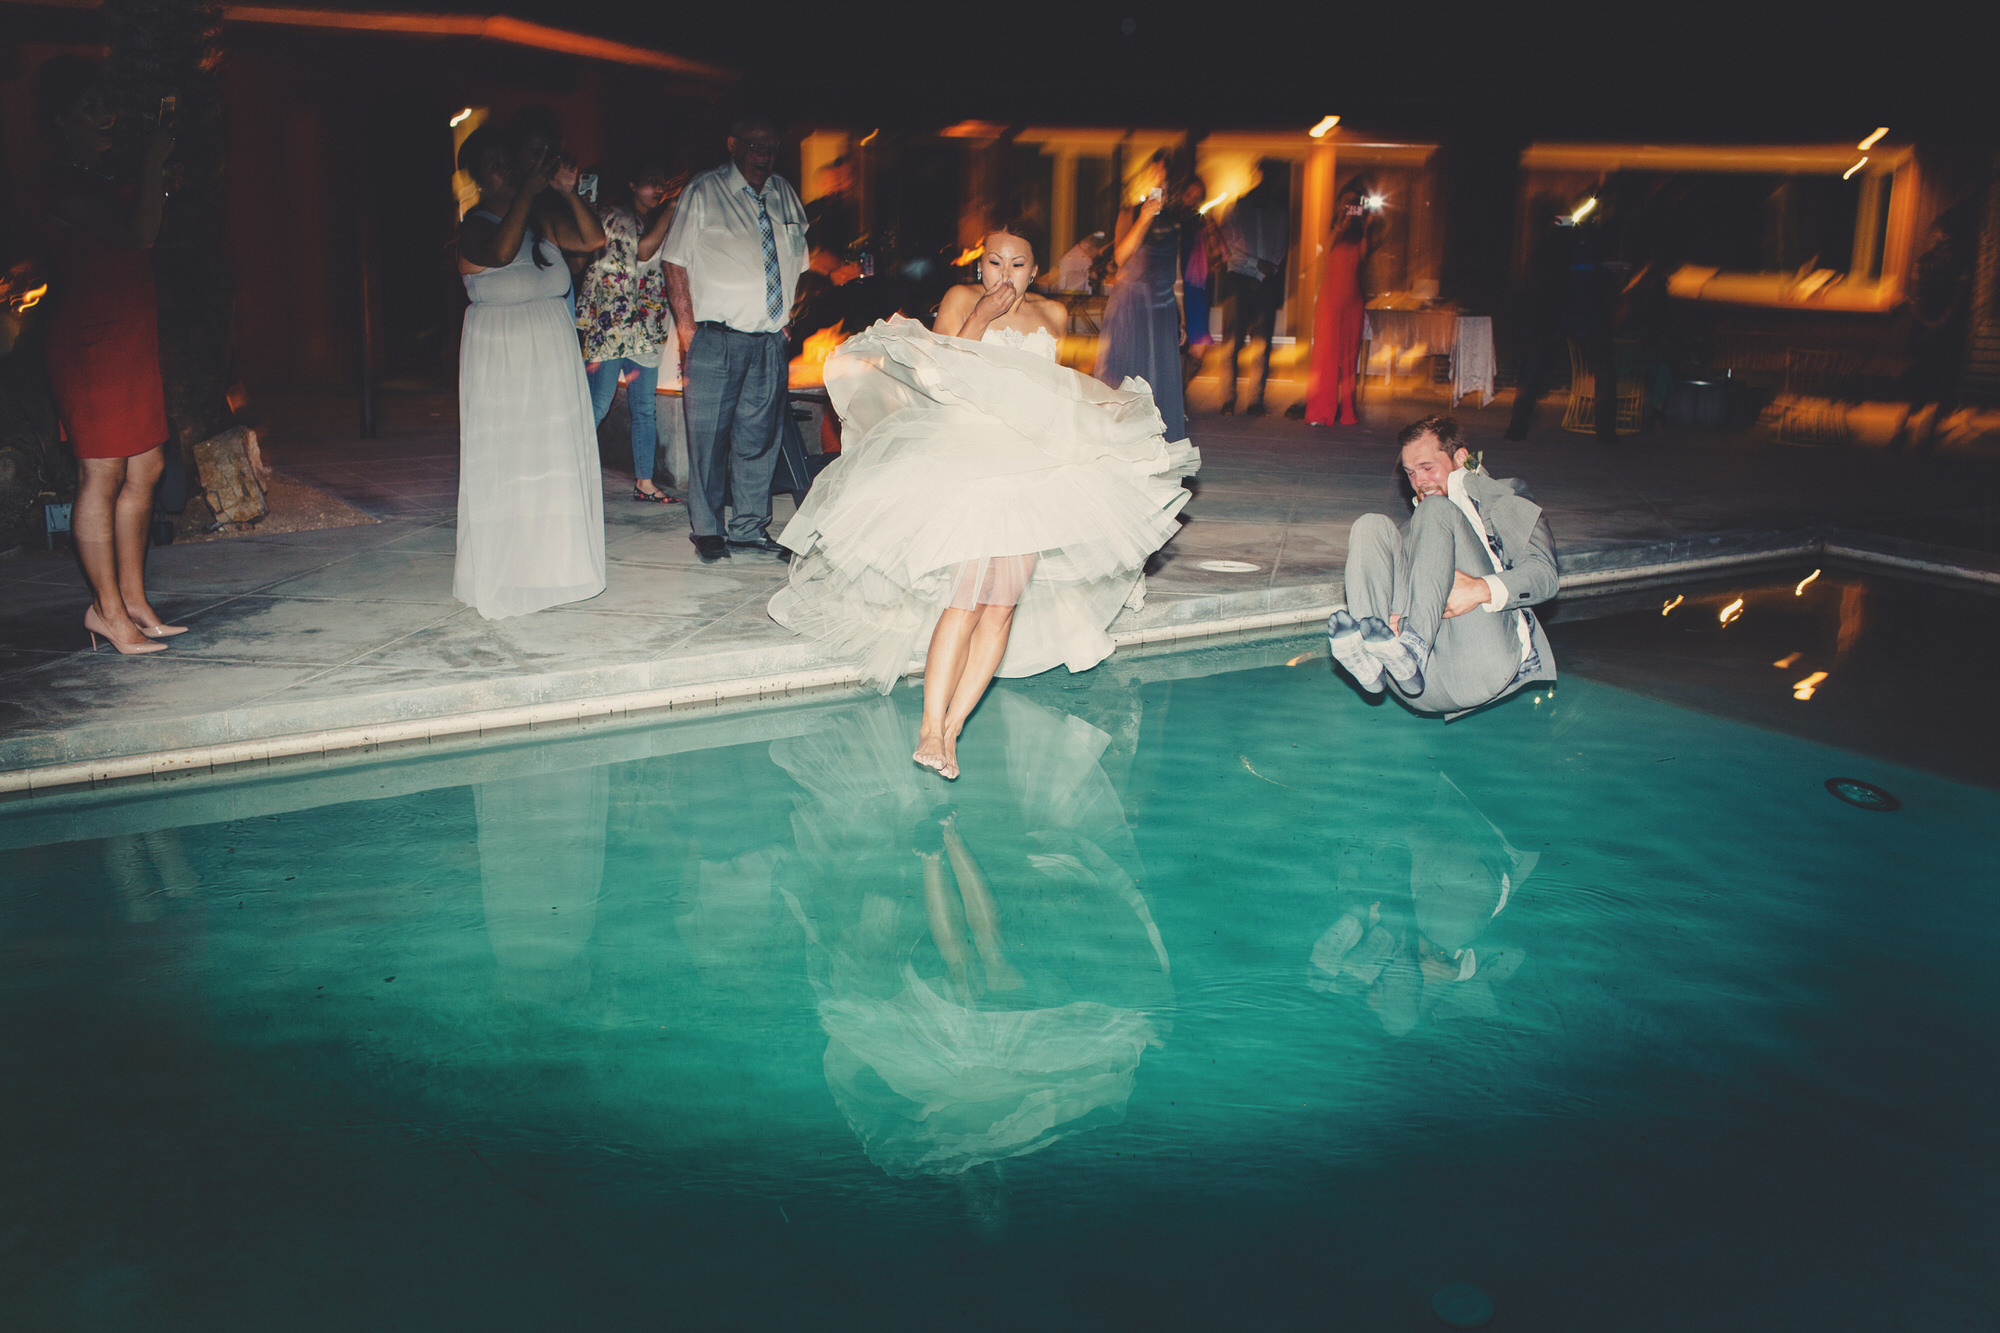 pool party wedding